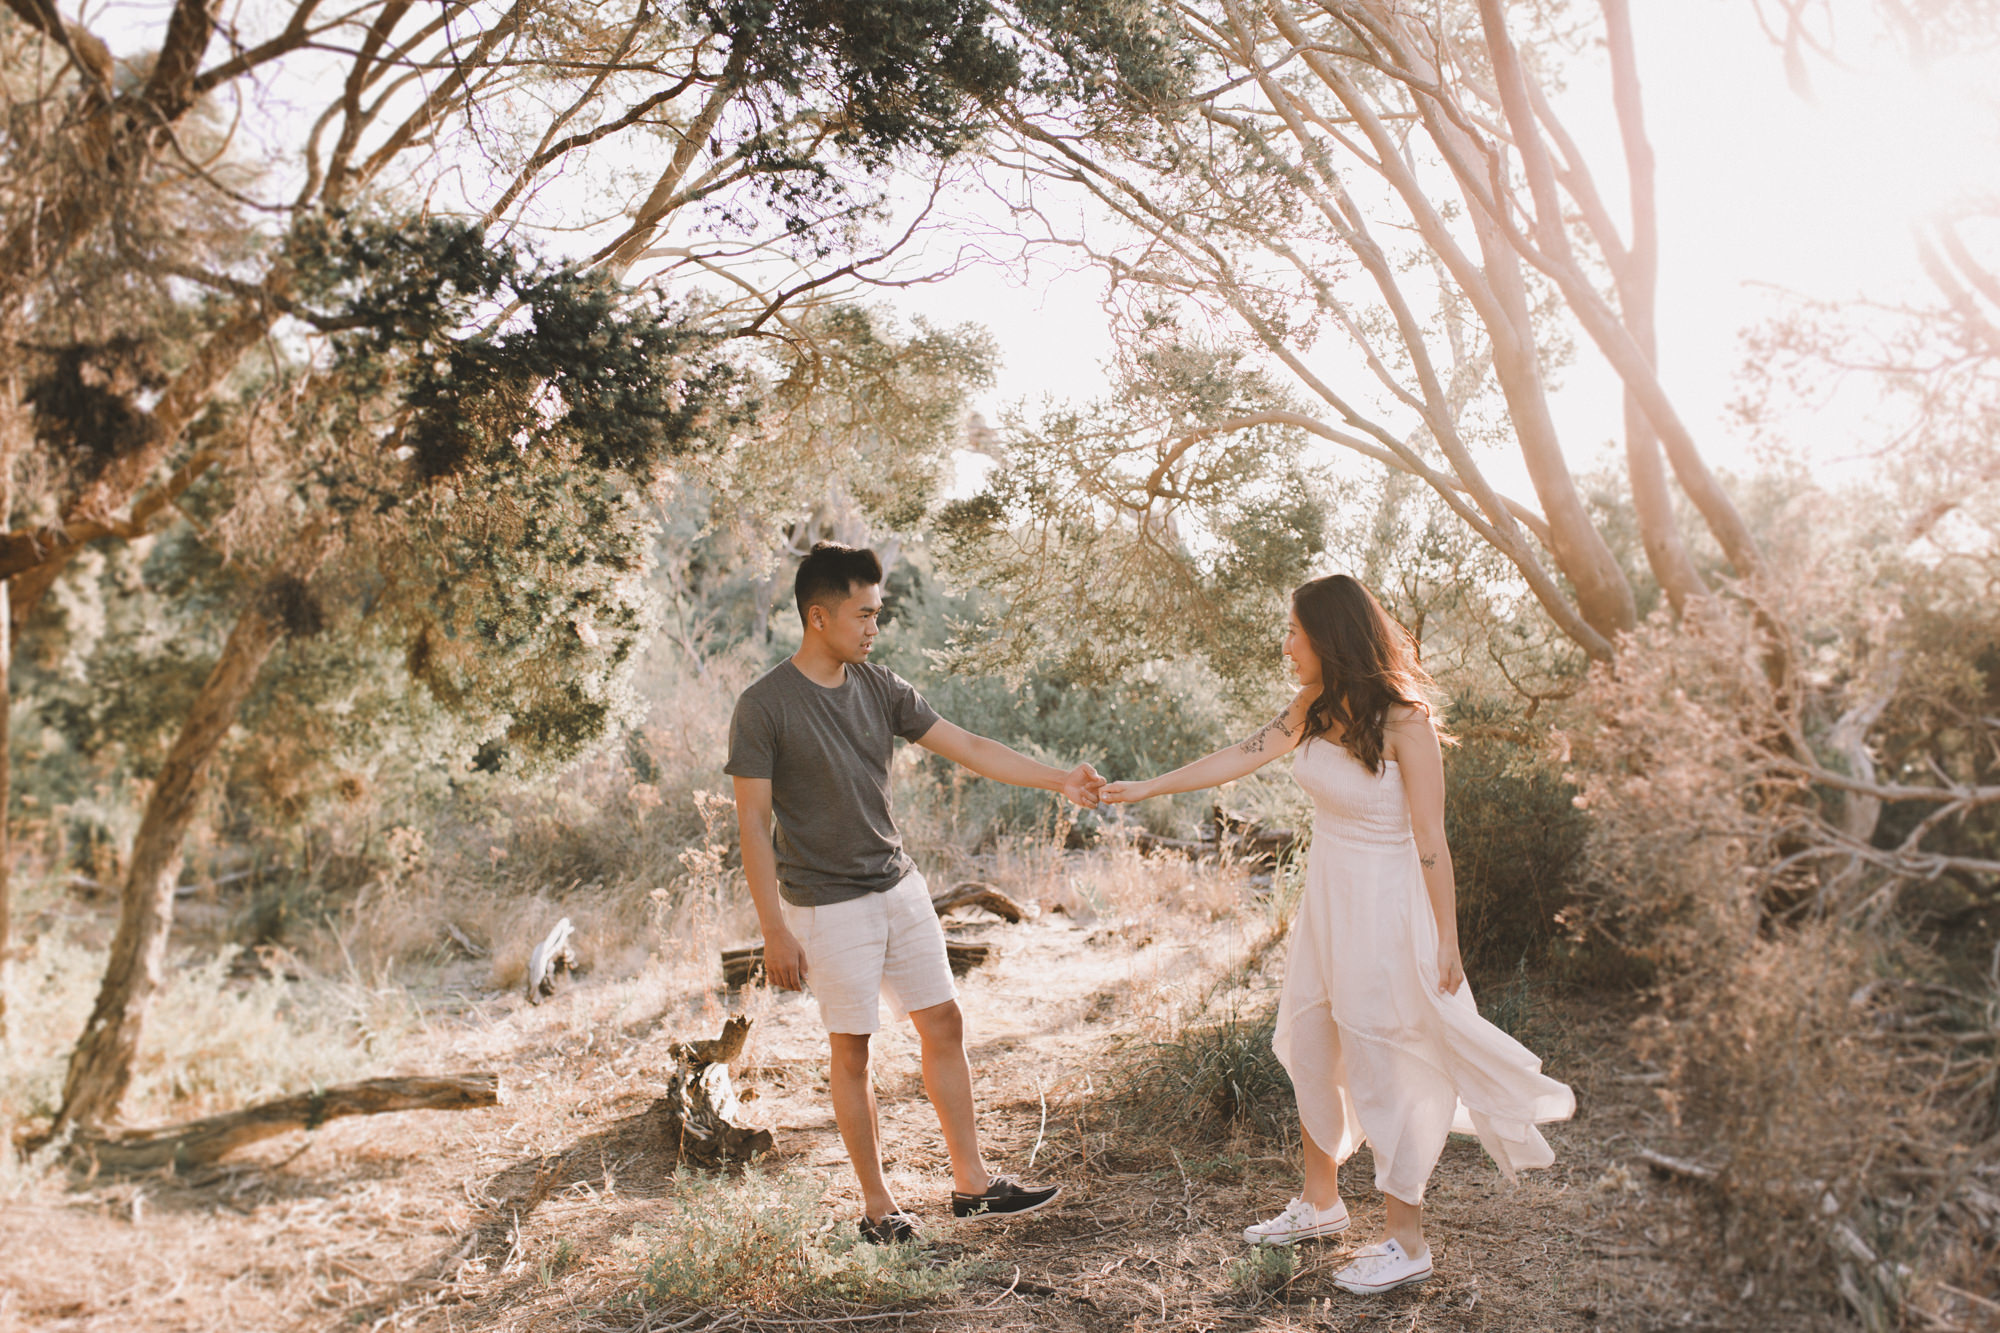 Mount Martha Natural Fun Candid Engagement Wedding Photography-13.jpg